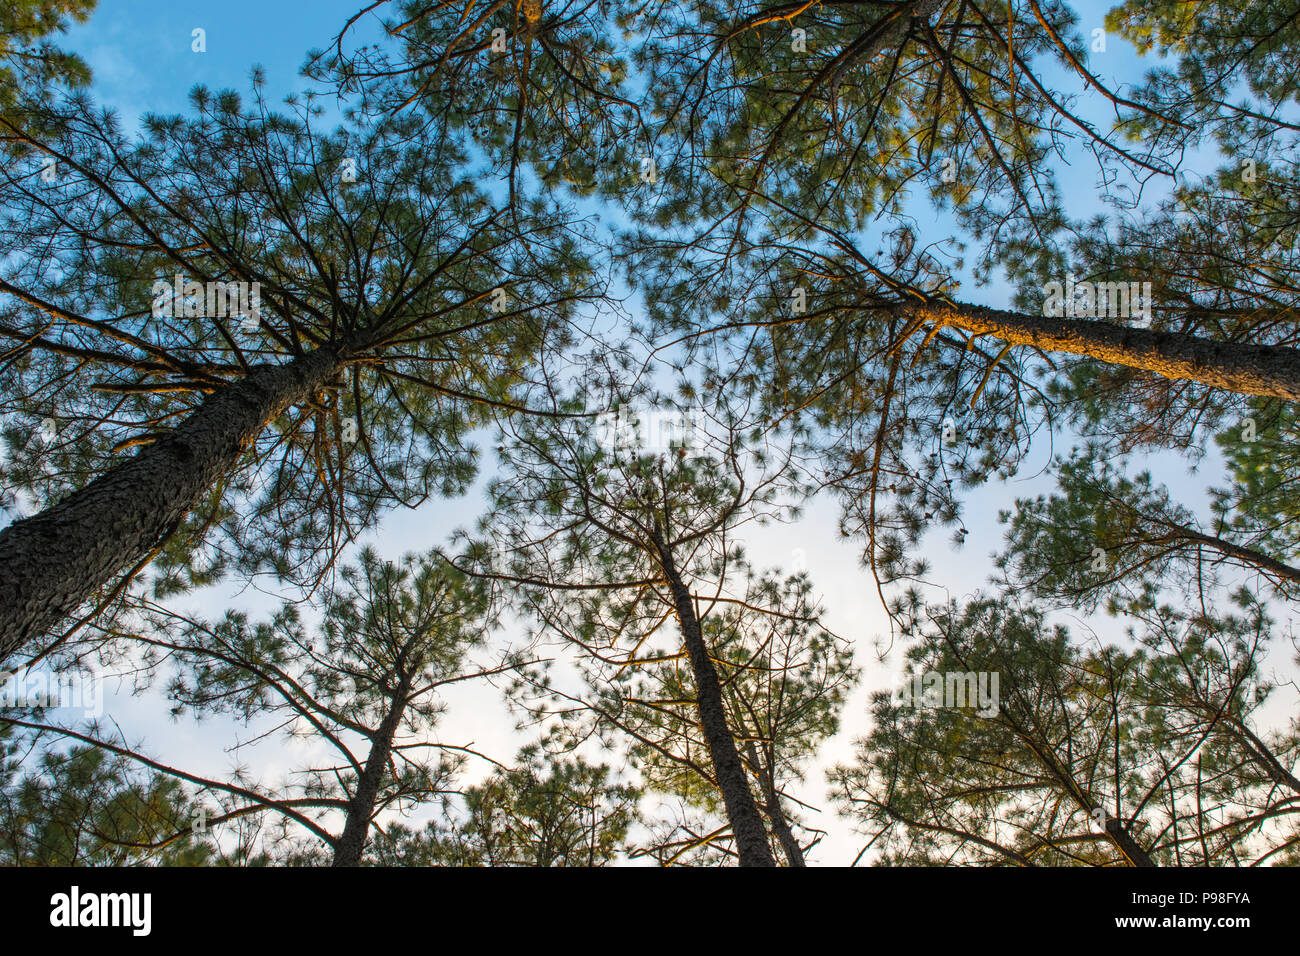 Looking up at tall Illinois trees in the summer time with a calming blue to white sky - Stock Image